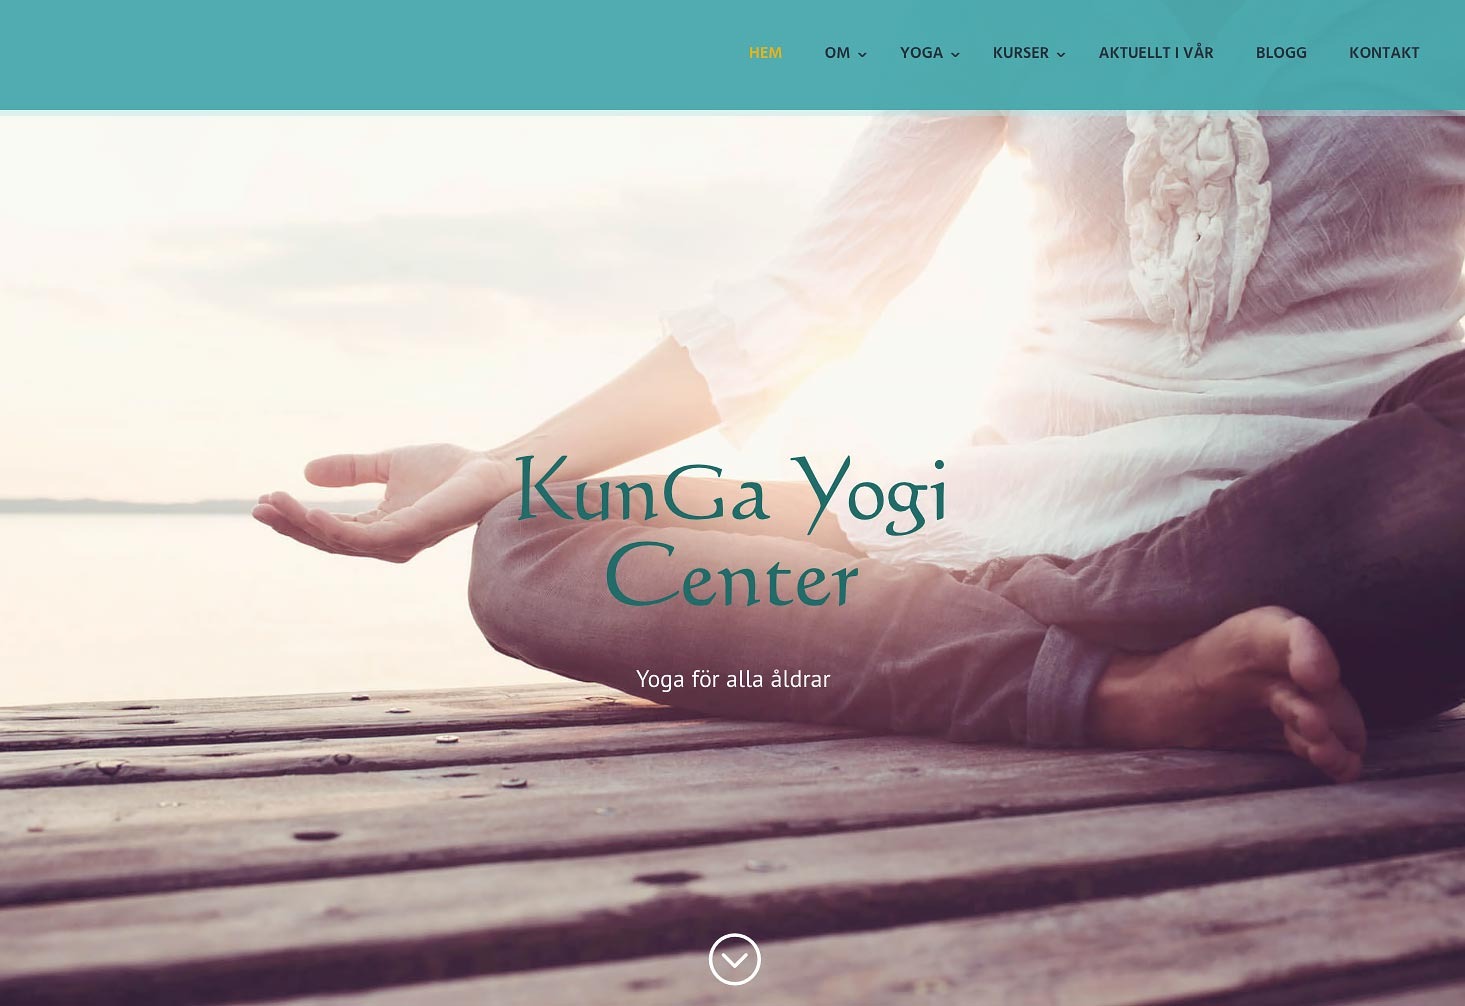 KunGa Yogi center - Halmstad